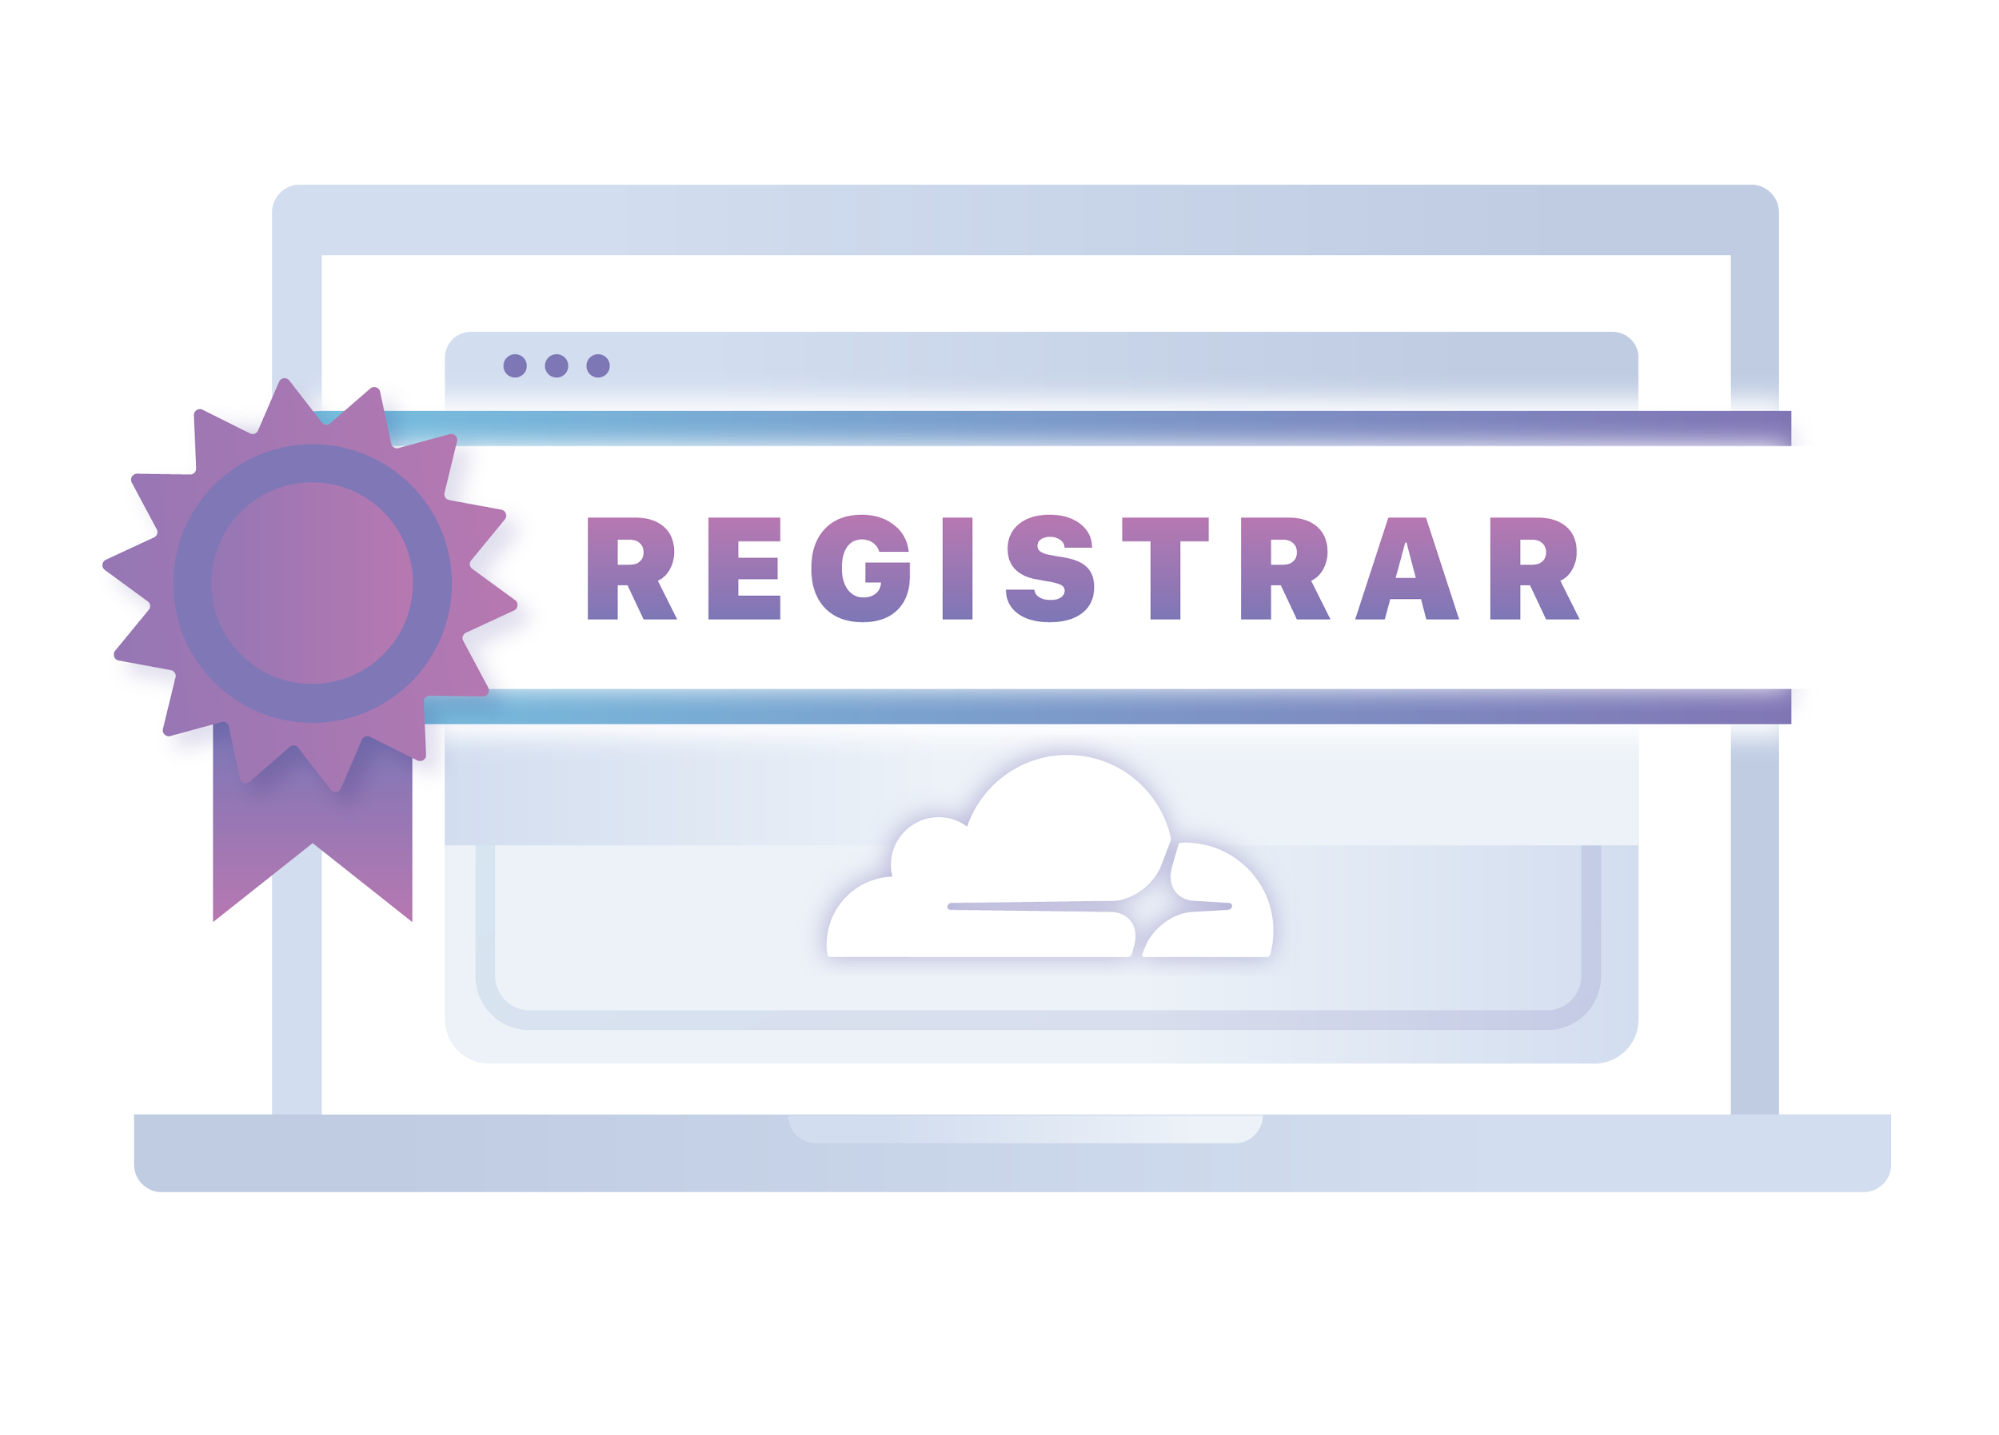 Cloudflare Registrar What Happens When You Register A Domain